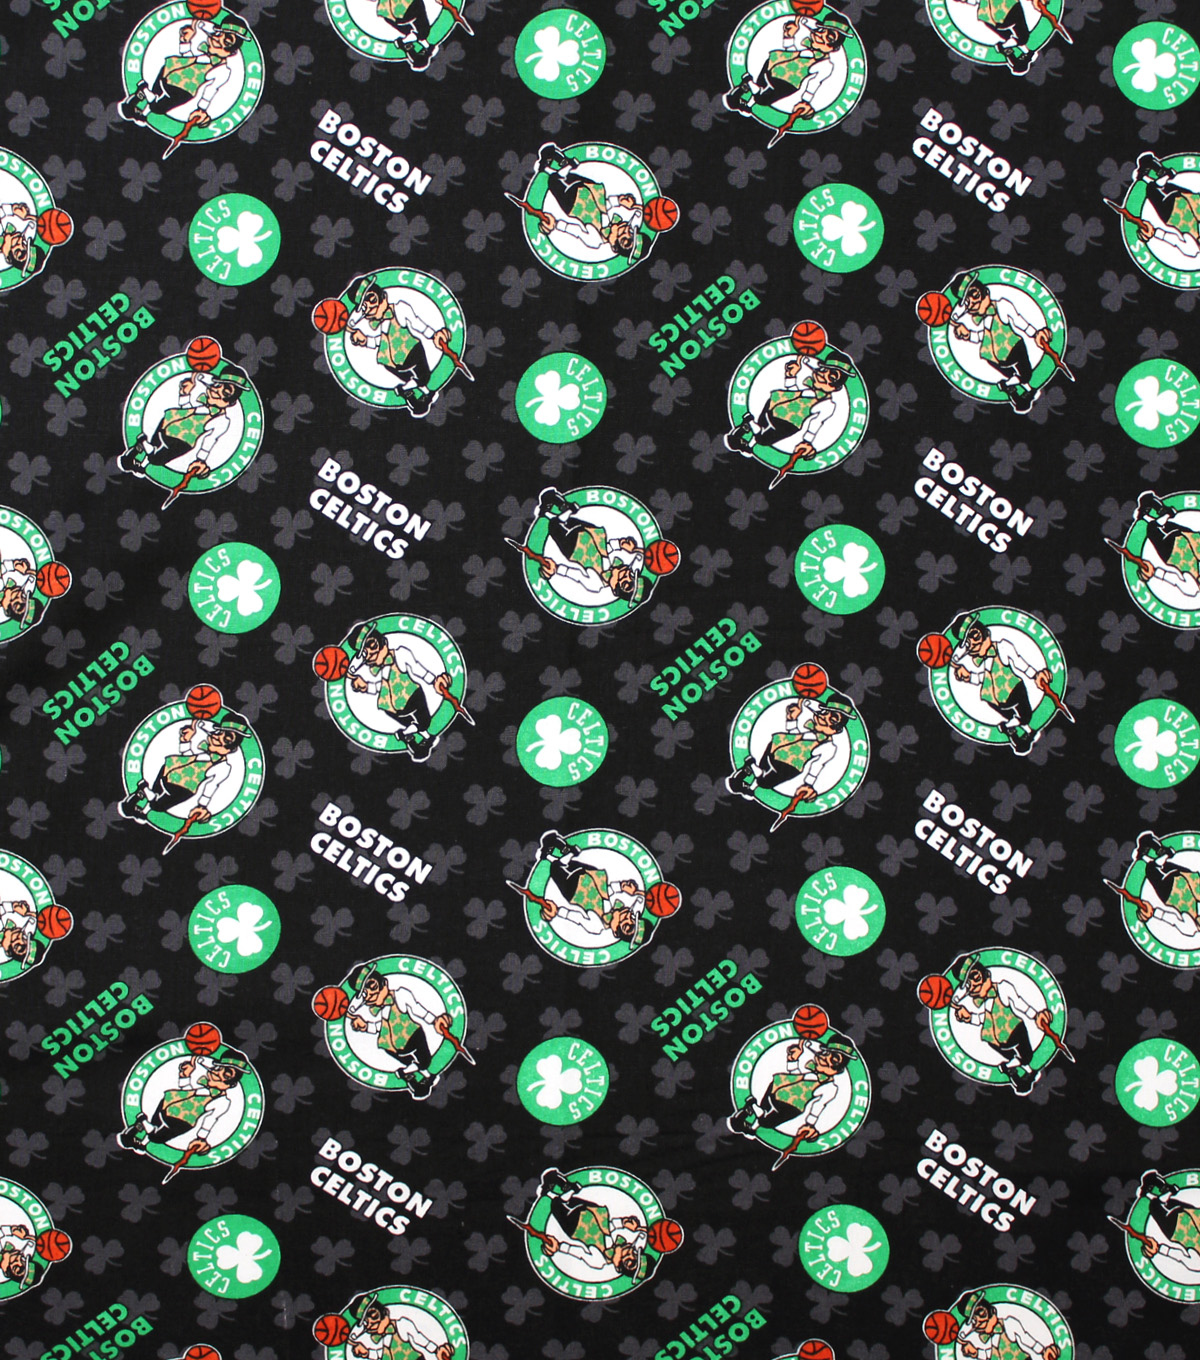 Boston Celtics Logo - Boston Celtics Cotton Fabric | JOANN